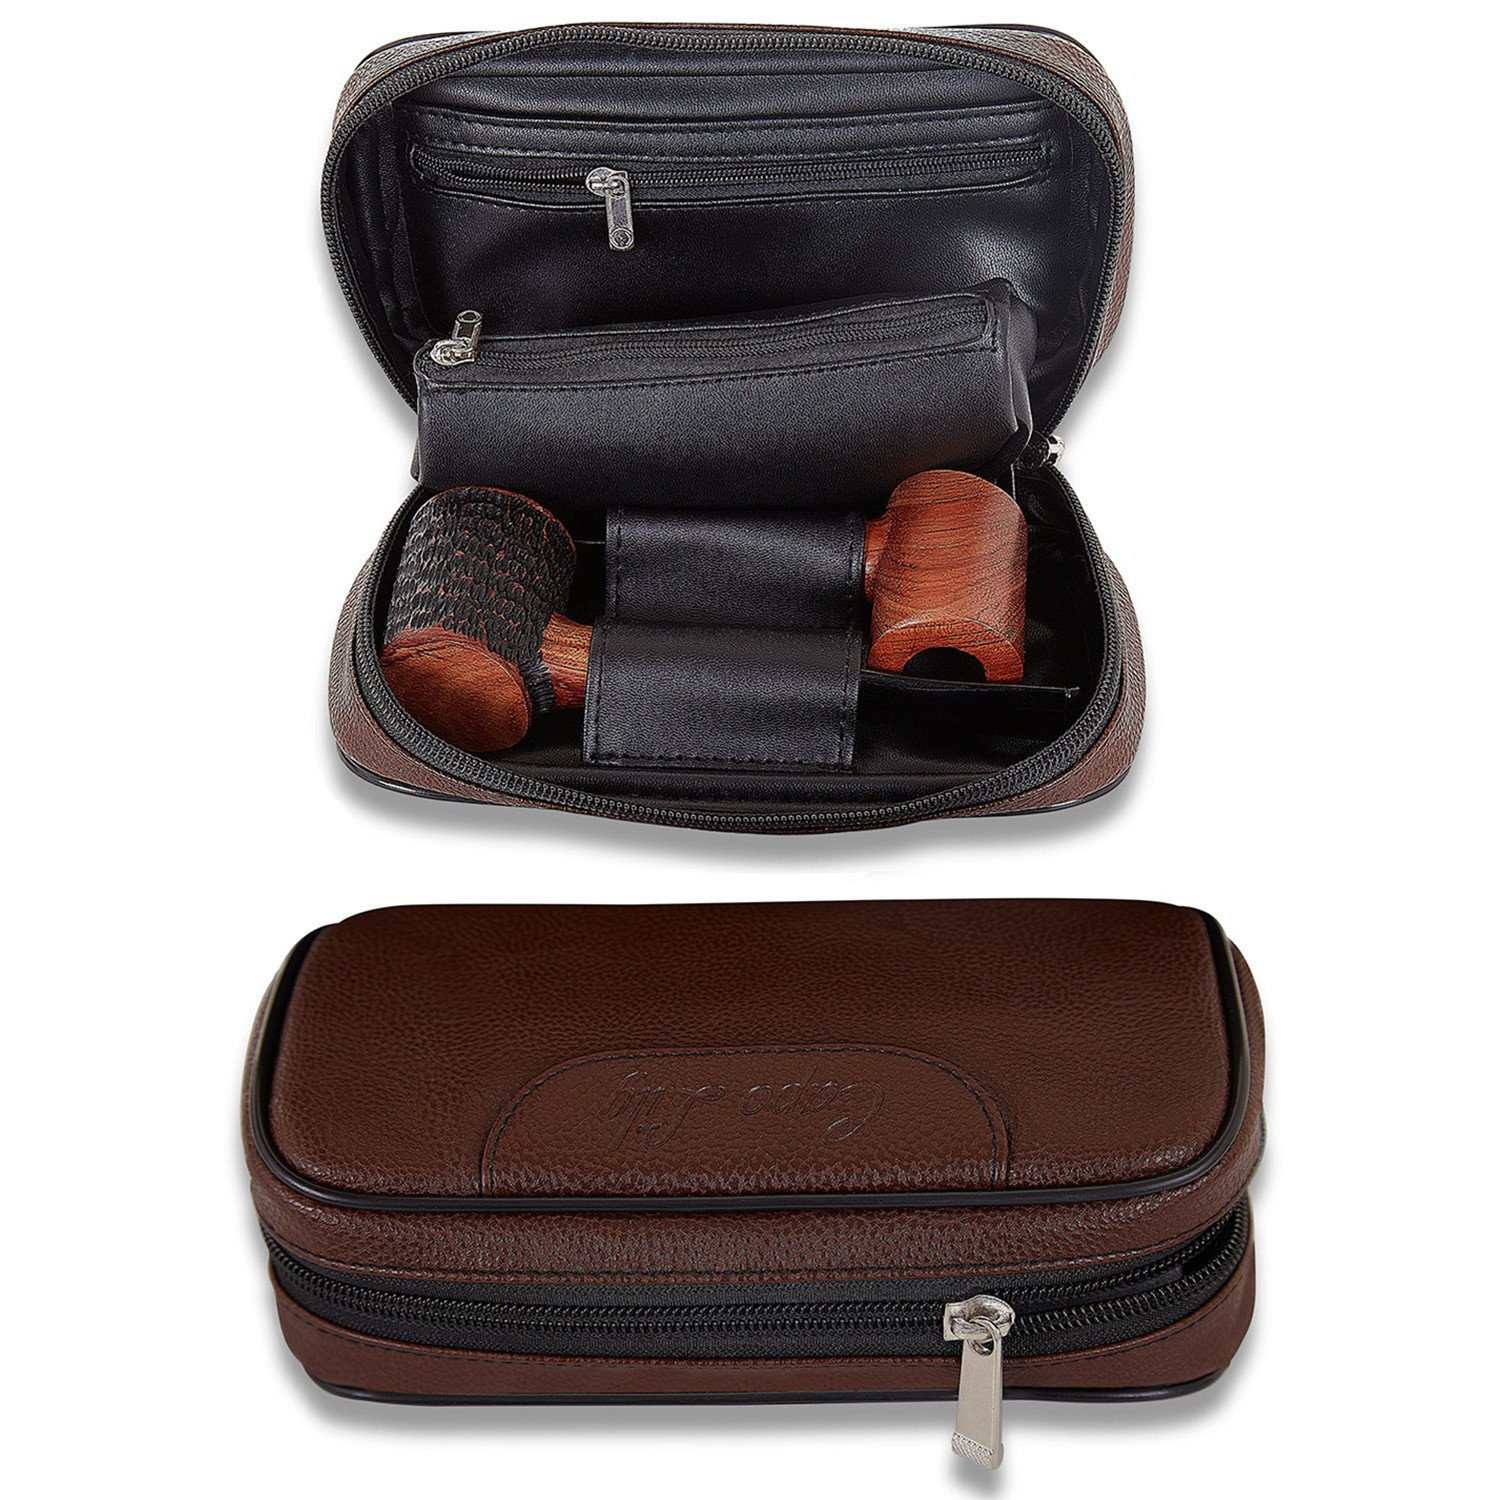 Pipe Bag, PU Leather Tobacco Pipe Accessories Pouch Holder 2 Pipes, Brown, by Capo Lily